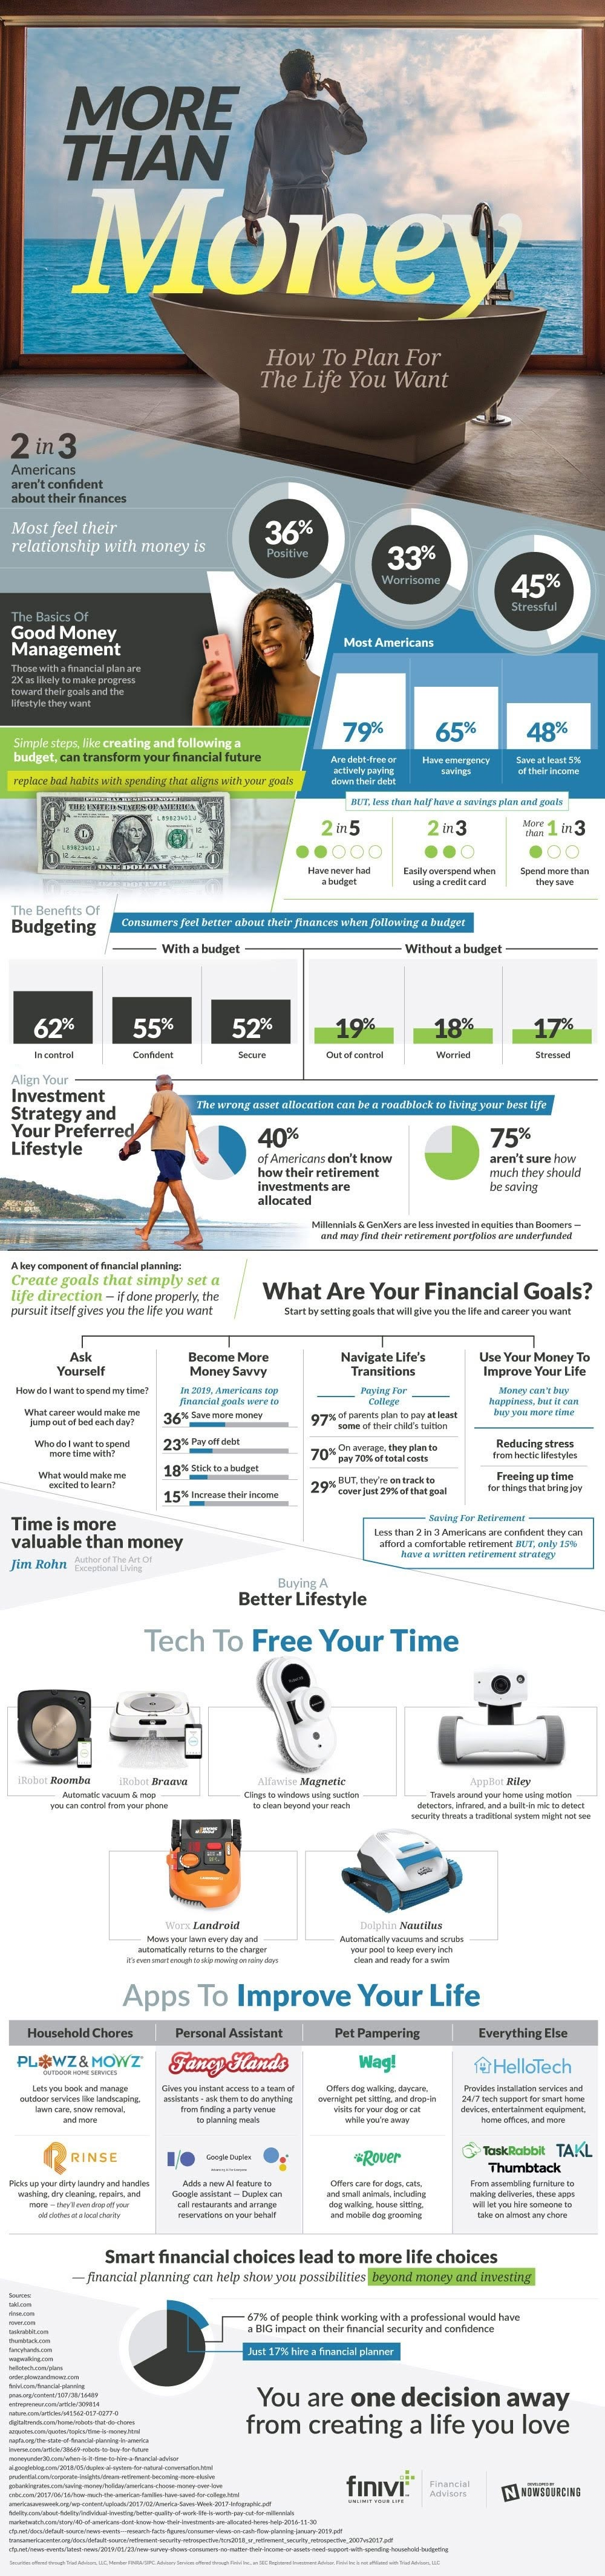 How Well Do You Know Your Finances? #infographic